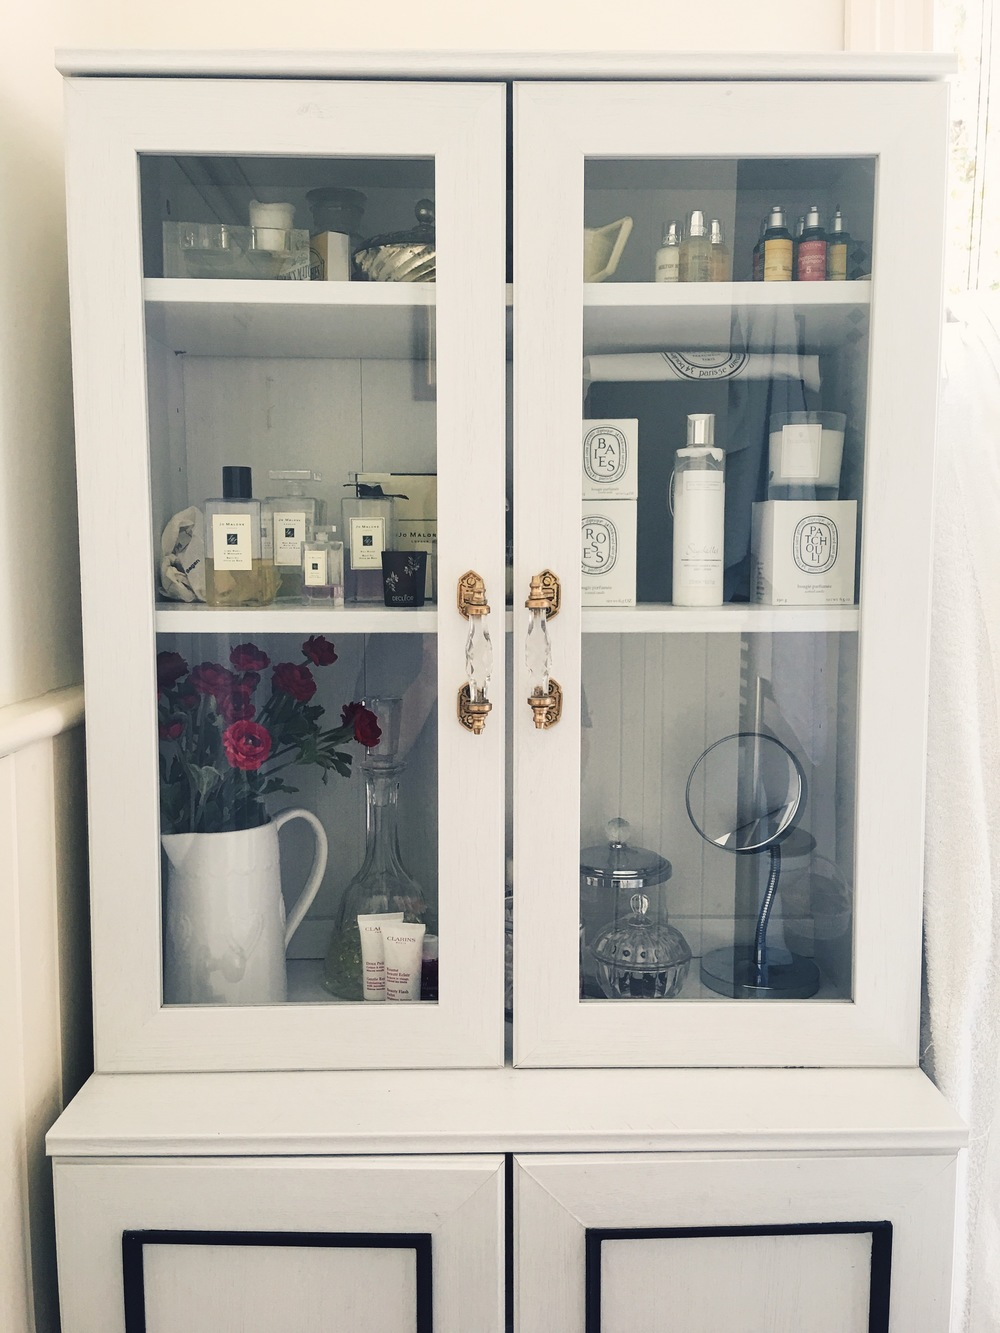 This display cabinet is from Ikea. I added handles from notonthehighstreet.com, and mouldings on the bottom two doors which I painted black to give it a more glam monchrome look. The display area reveals decorative and luxury bathroom items, and the hidden area contains the stuff I do not want on display like cleaning products. tampons and rubber ducks!